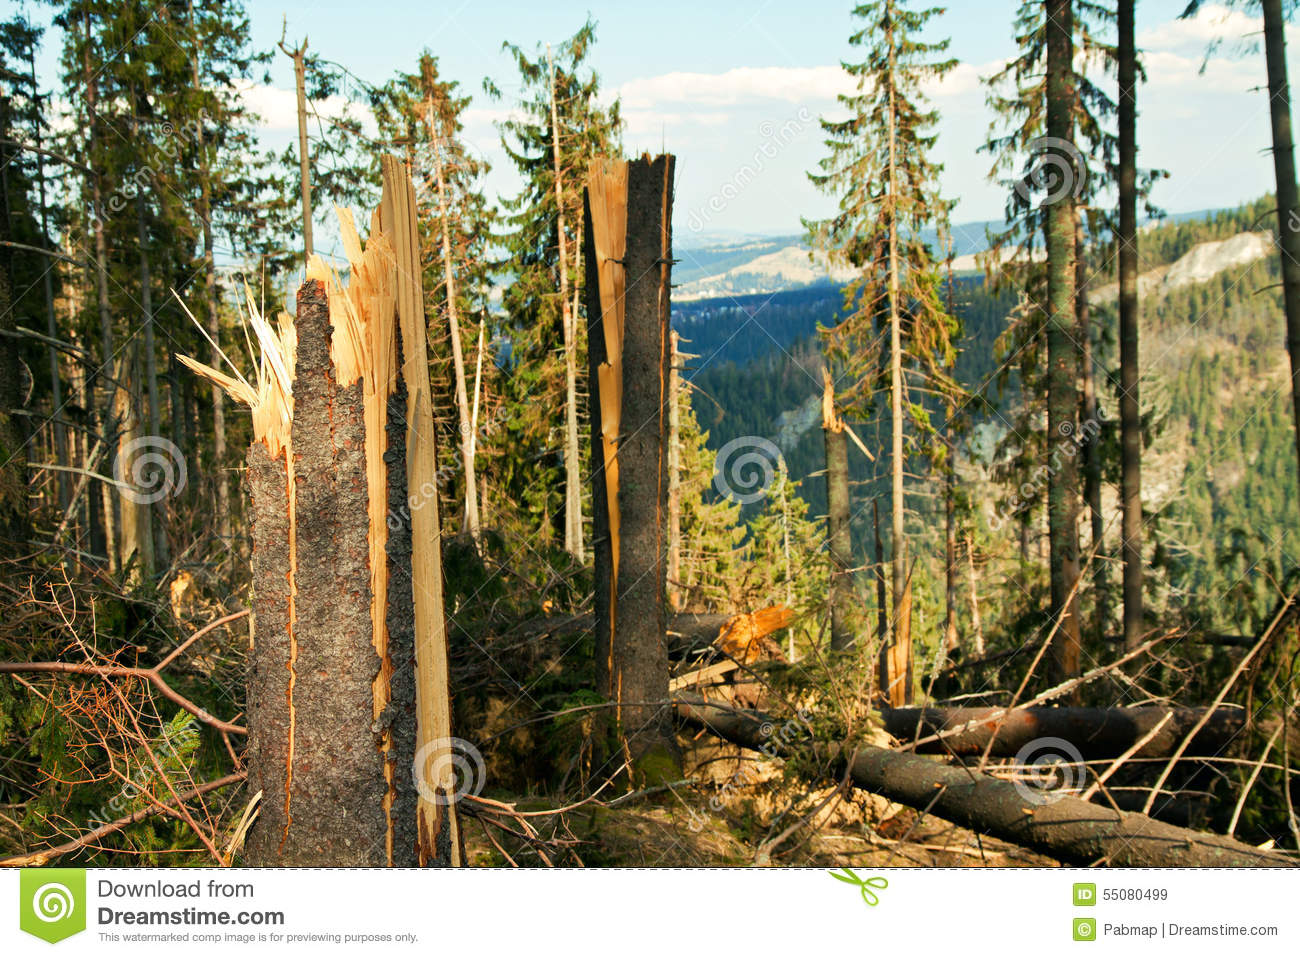 disaster in the forest ★★★ disaster movie trailer - 2017 guide to emergency survival in america @ disaster movie trailer @ watch free video now (recommended) - shenandoah forest.